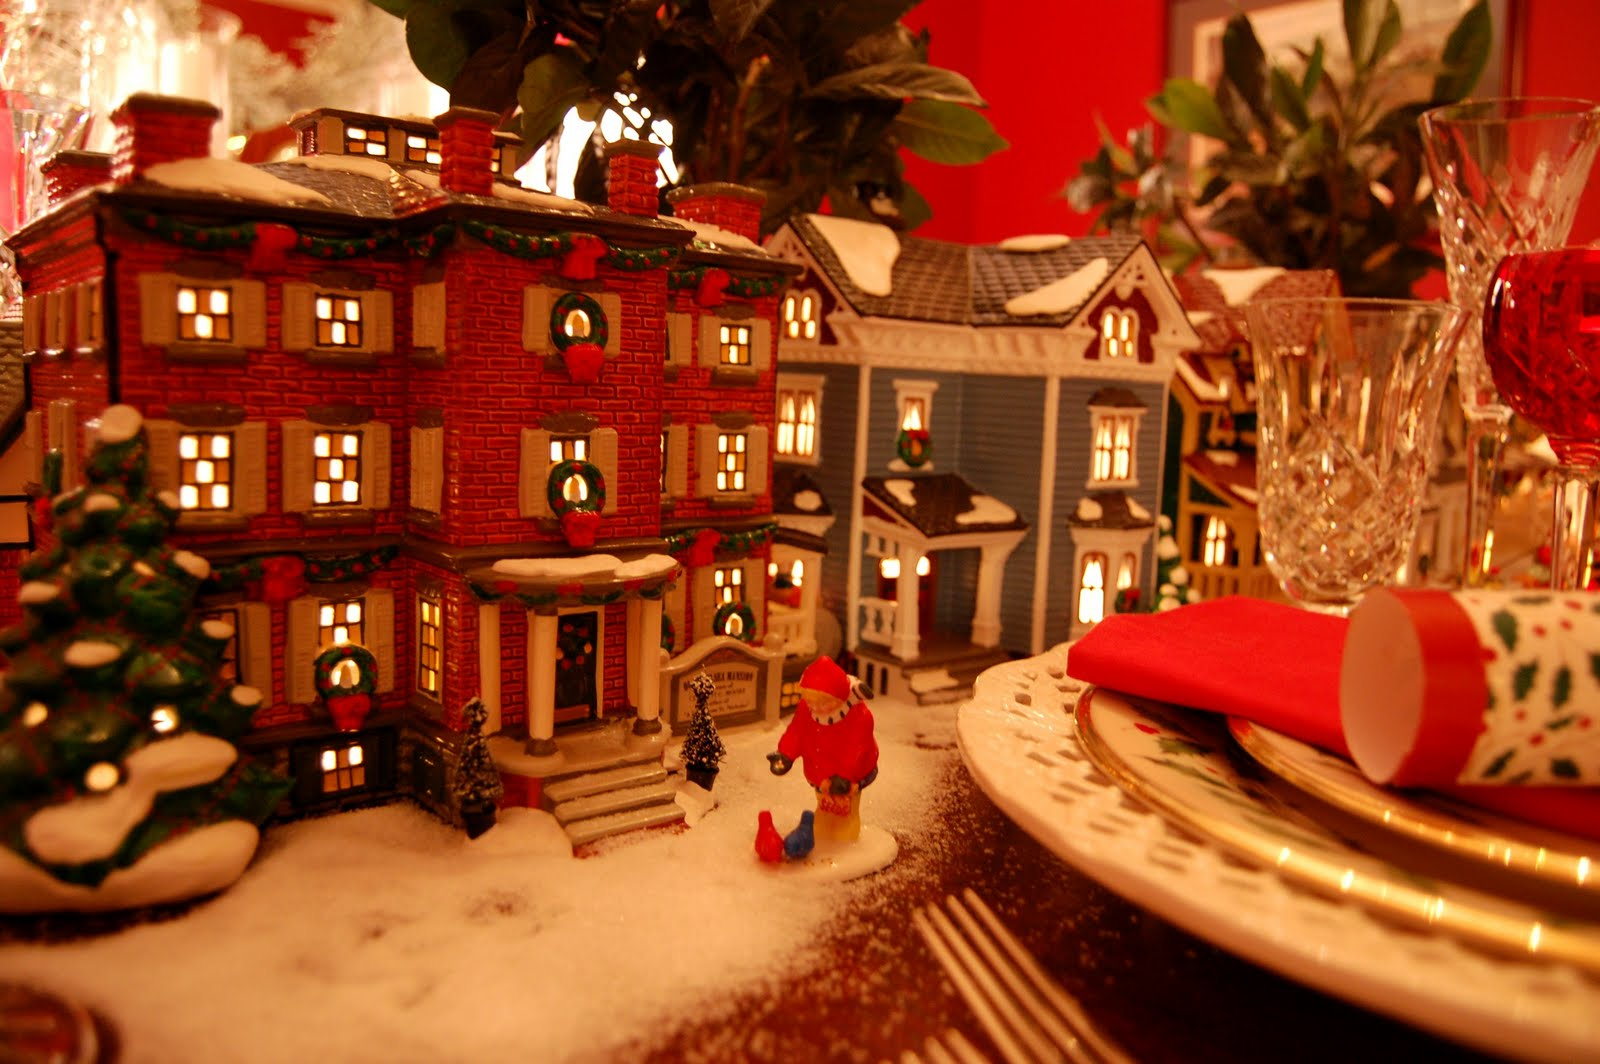 Christmas table setting tablescape with dept lit